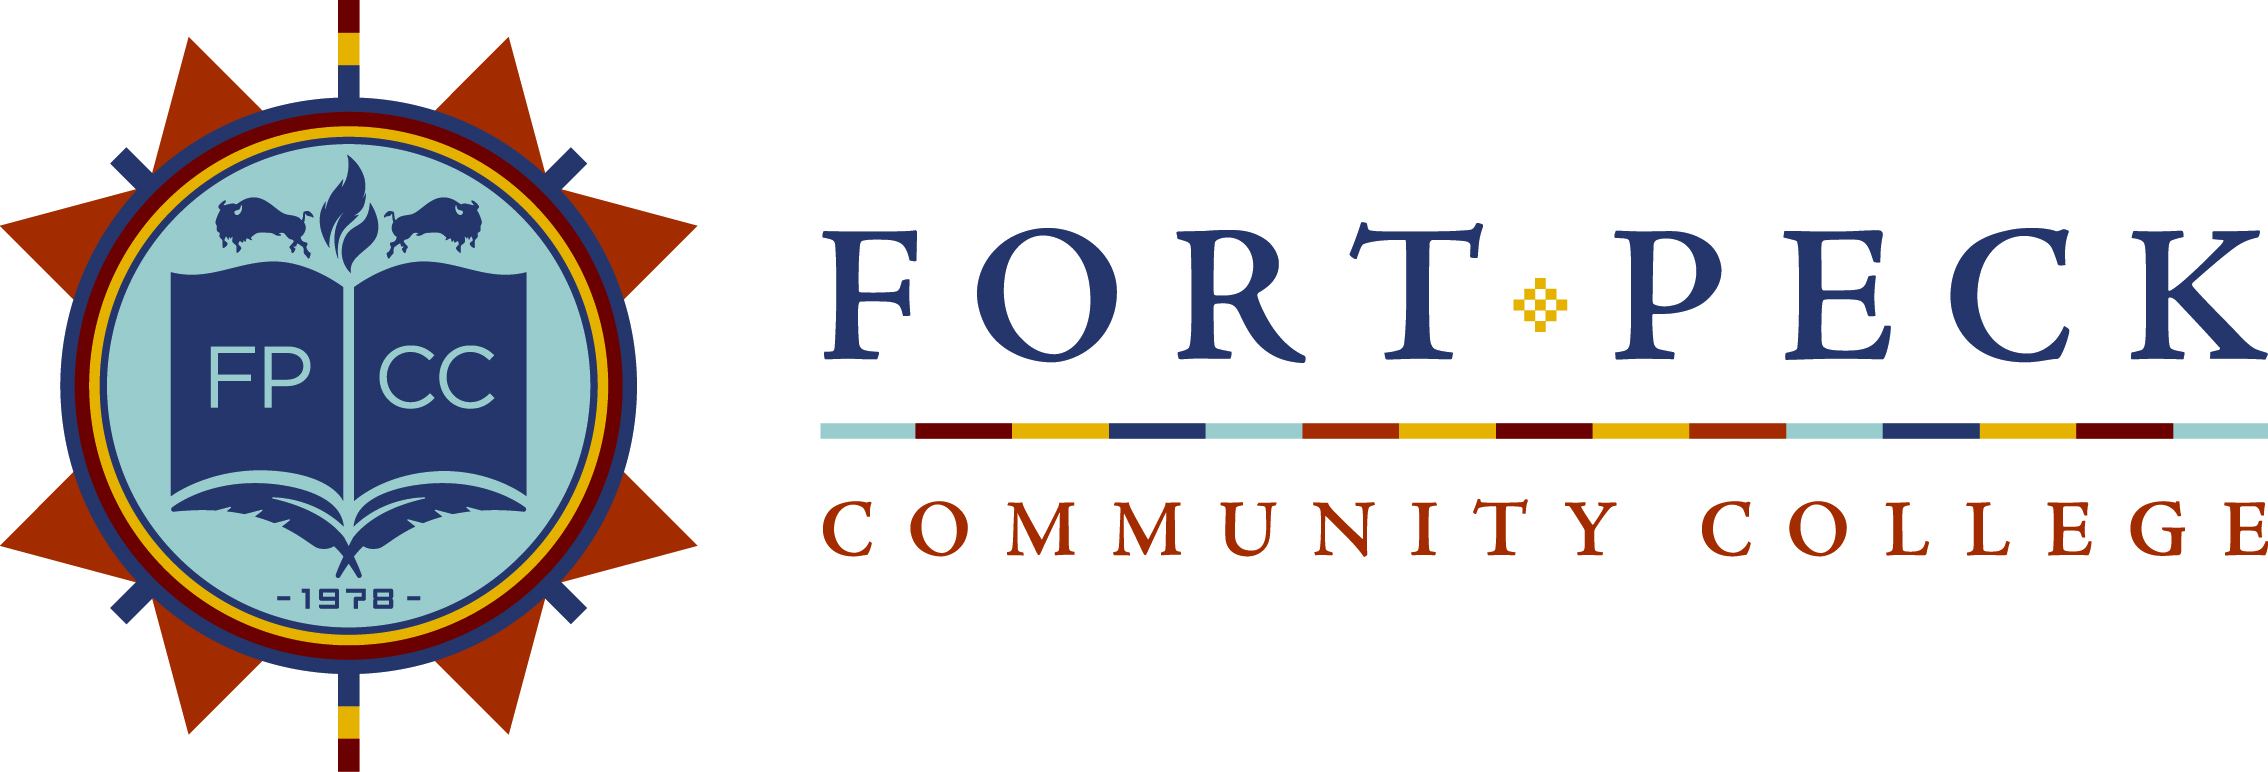 fort peck community college logo